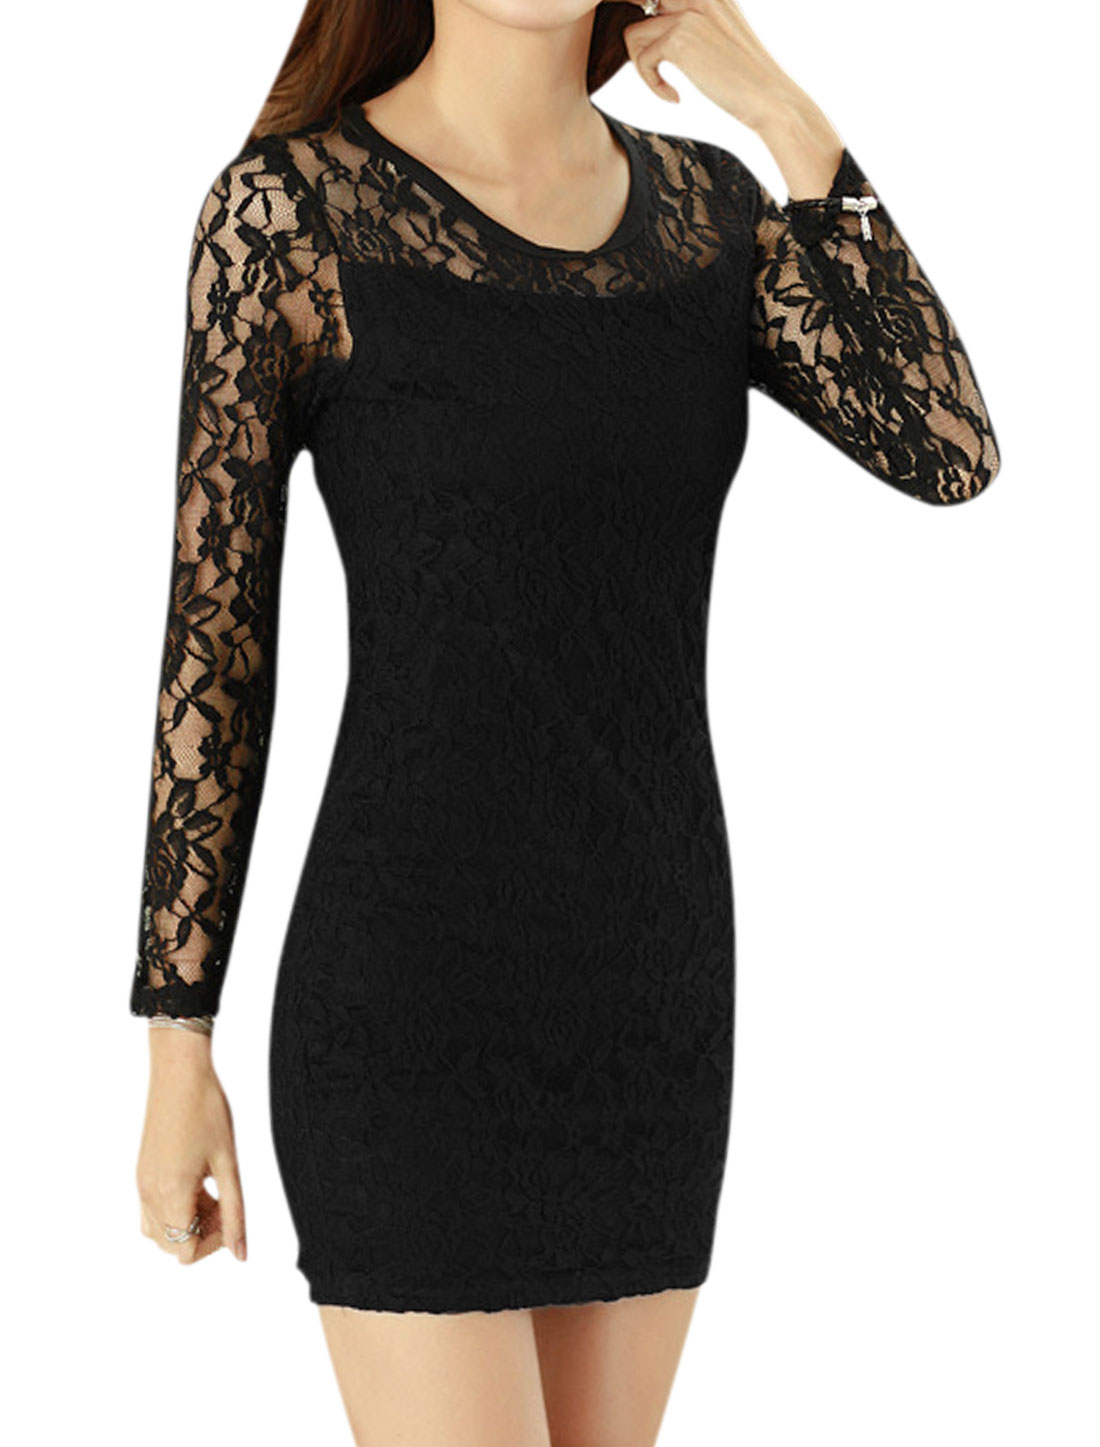 Ladies Round Neckline Long Sleeves Lace Bodycon Dress Black M